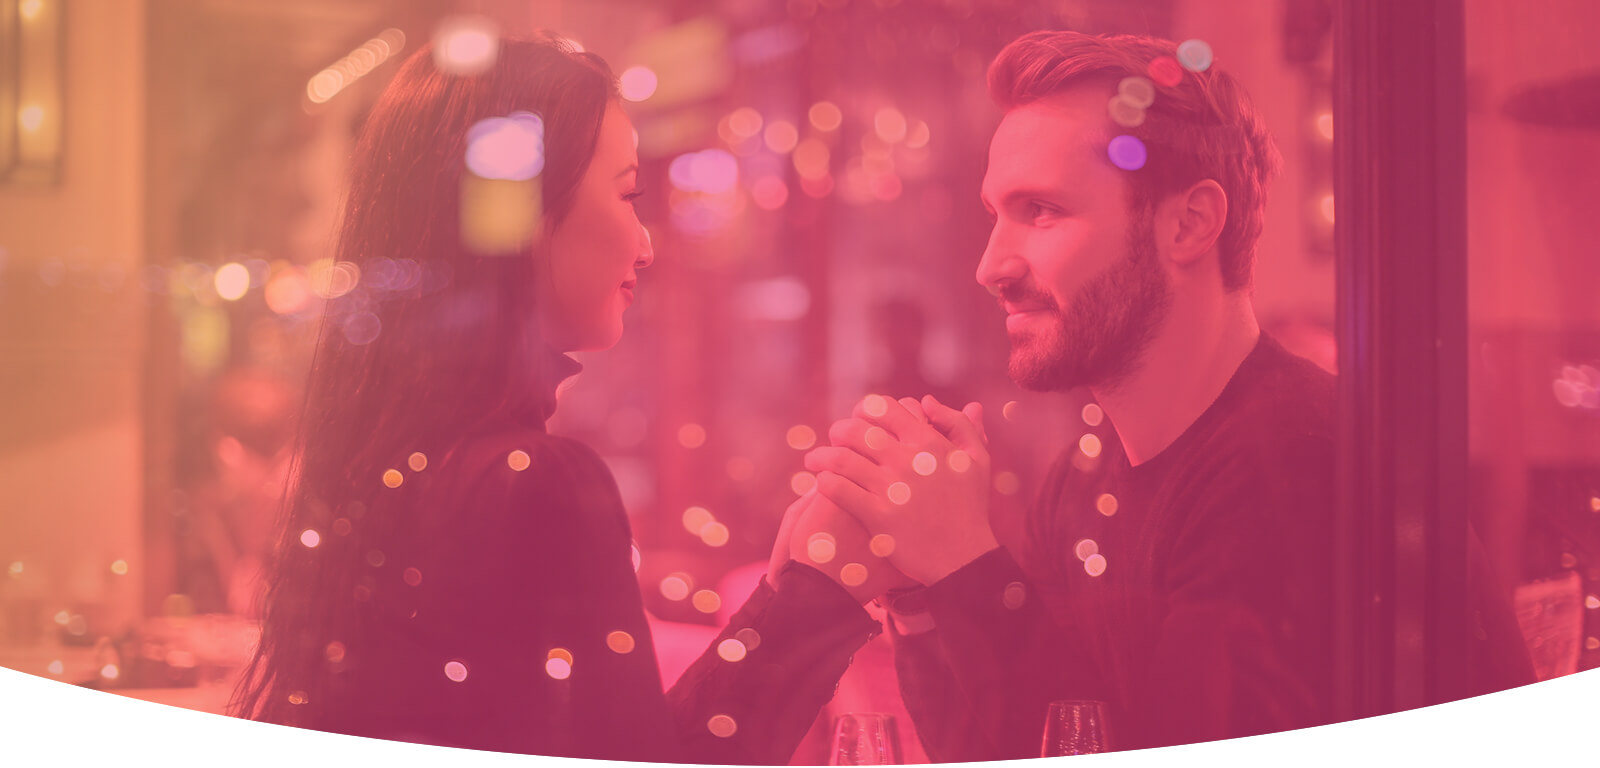 How much is the estimated cost to develop a Dating App like Tinder?